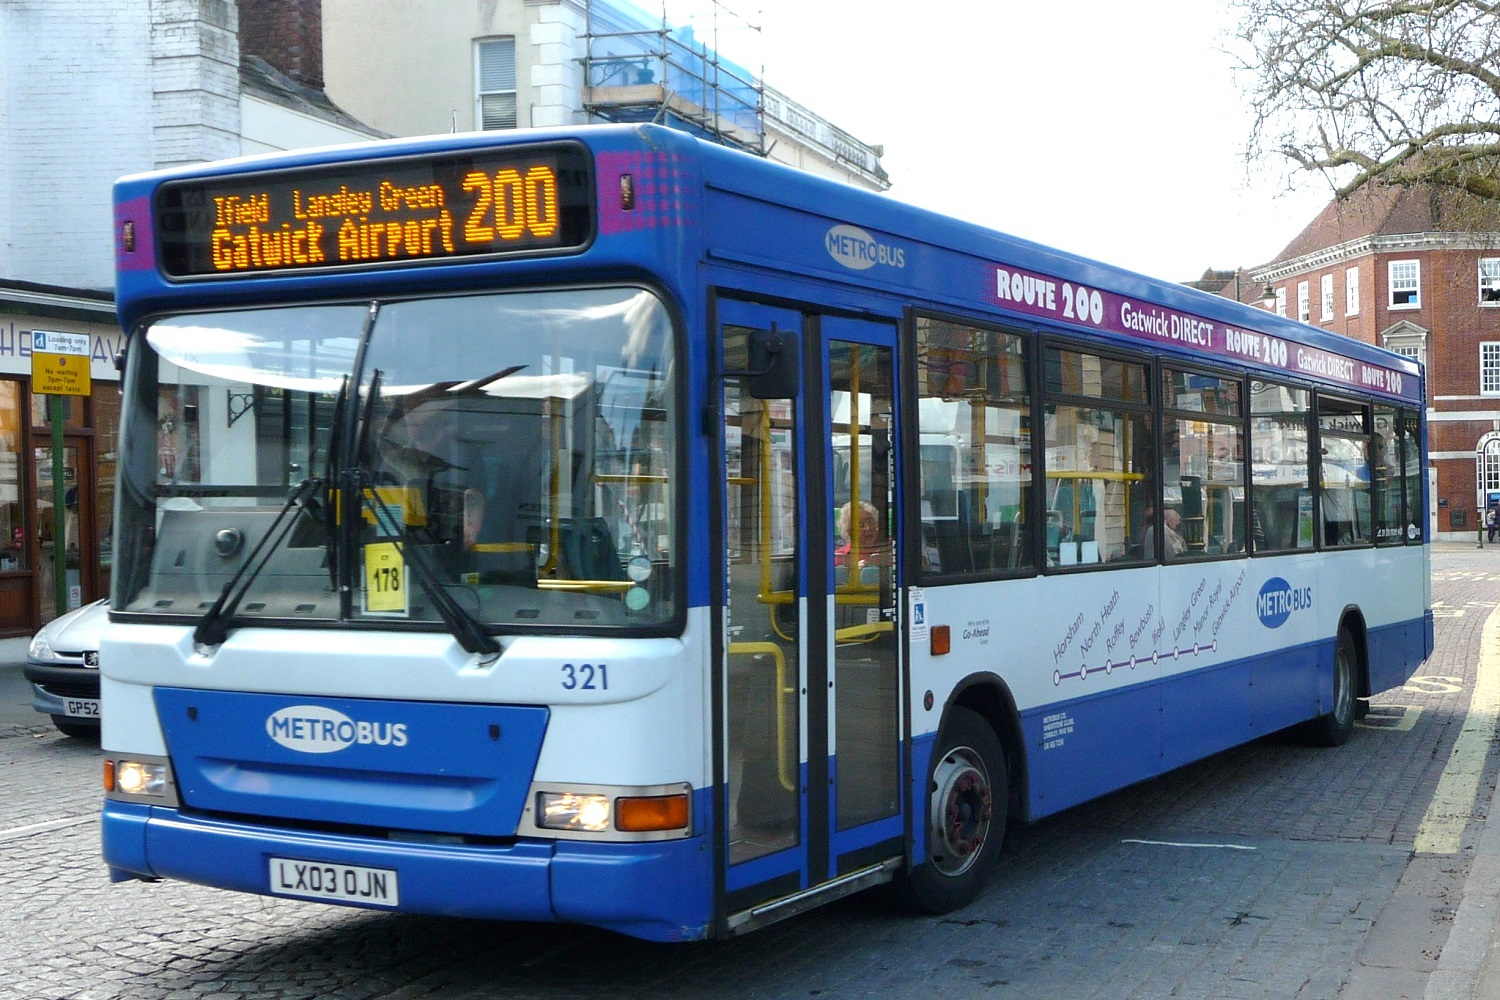 Image of a blue London bus bound for Gatwick Airport.